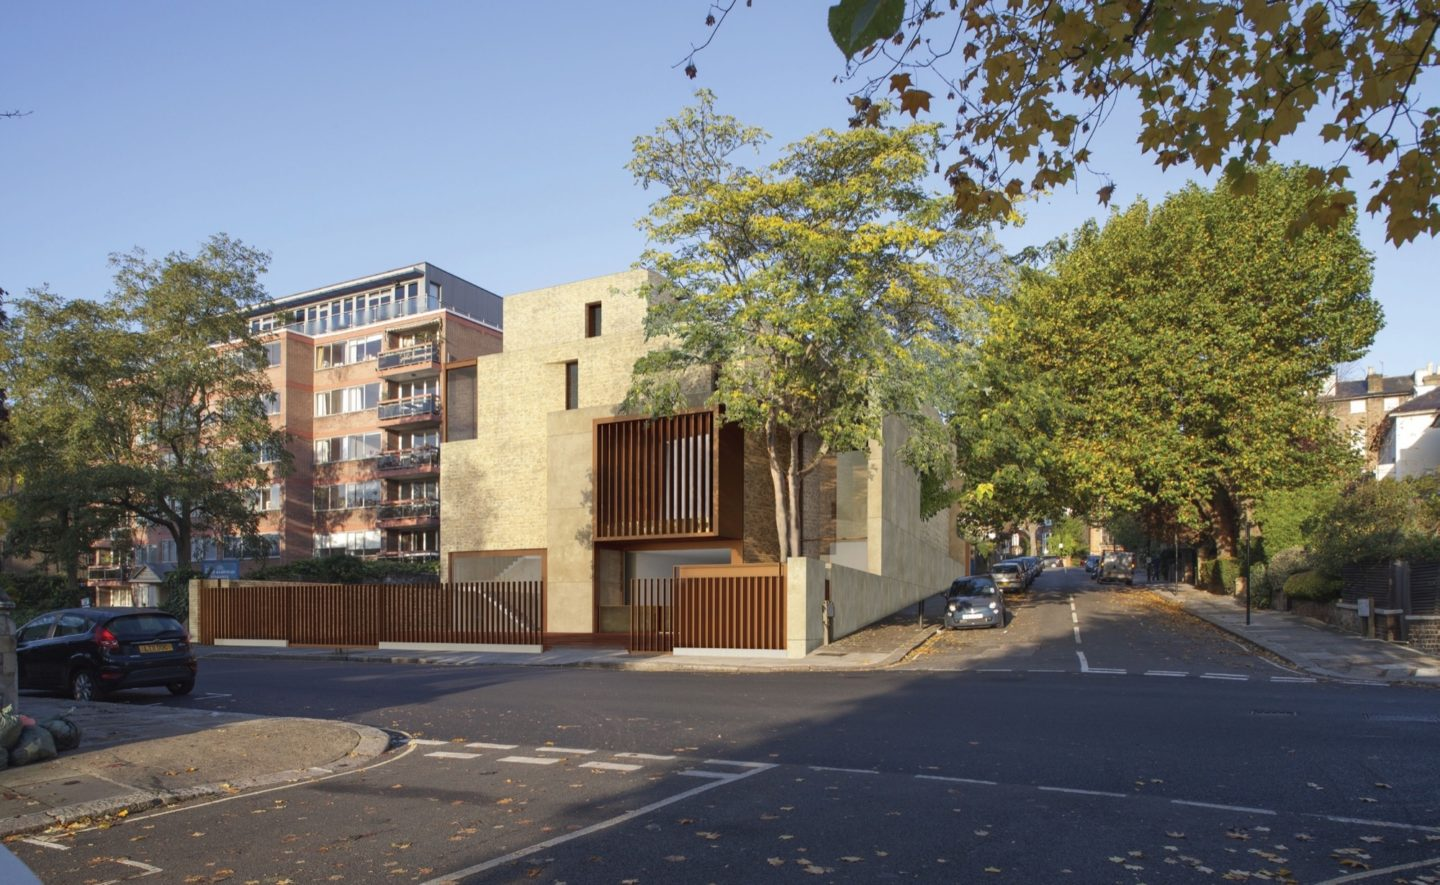 South Hampstead Synagogue, London